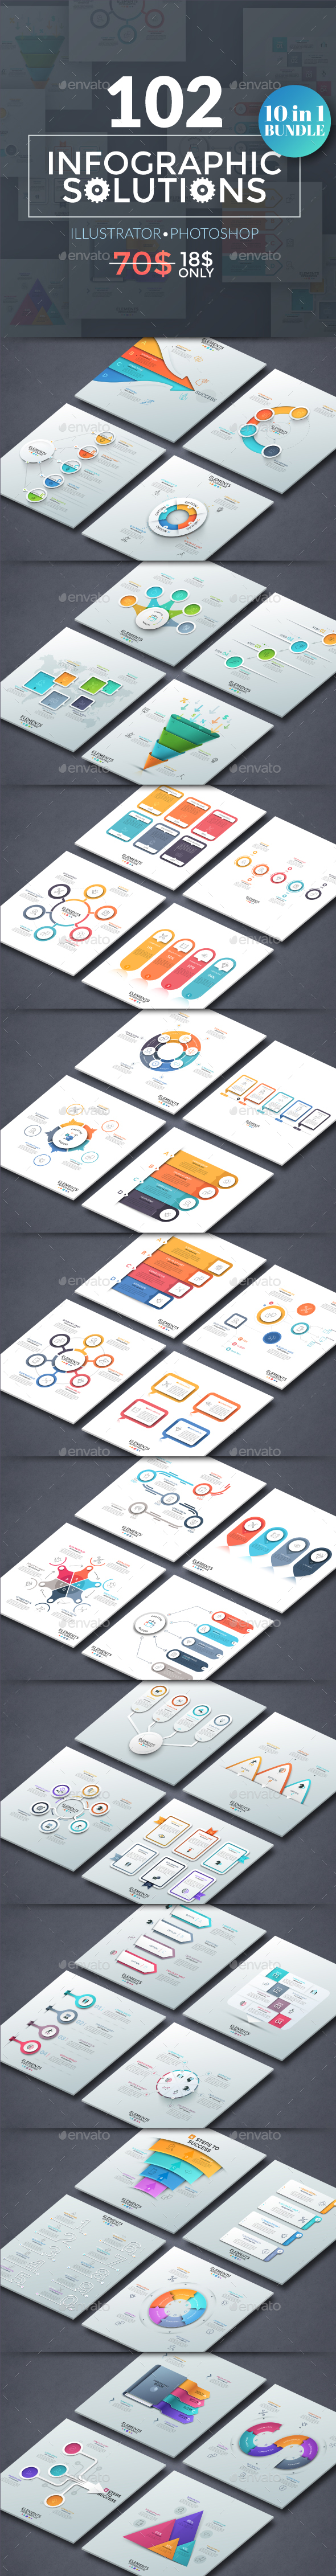 102 Infographic Solutions (10 in 1 Bundle) - Infographics